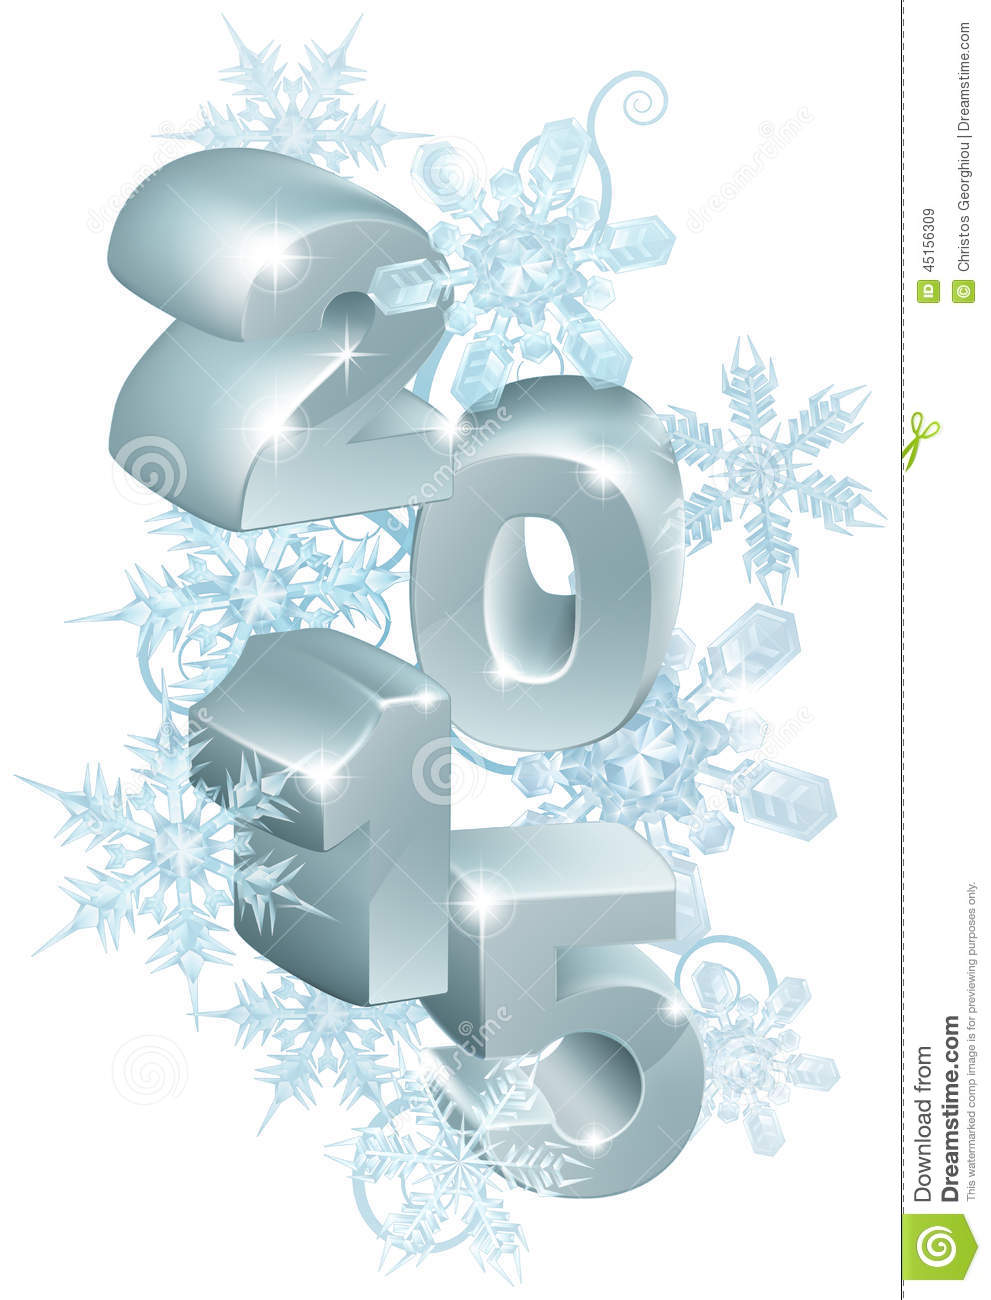 New year 2015 christmas decorations ball snowflakes Latest christmas decorations